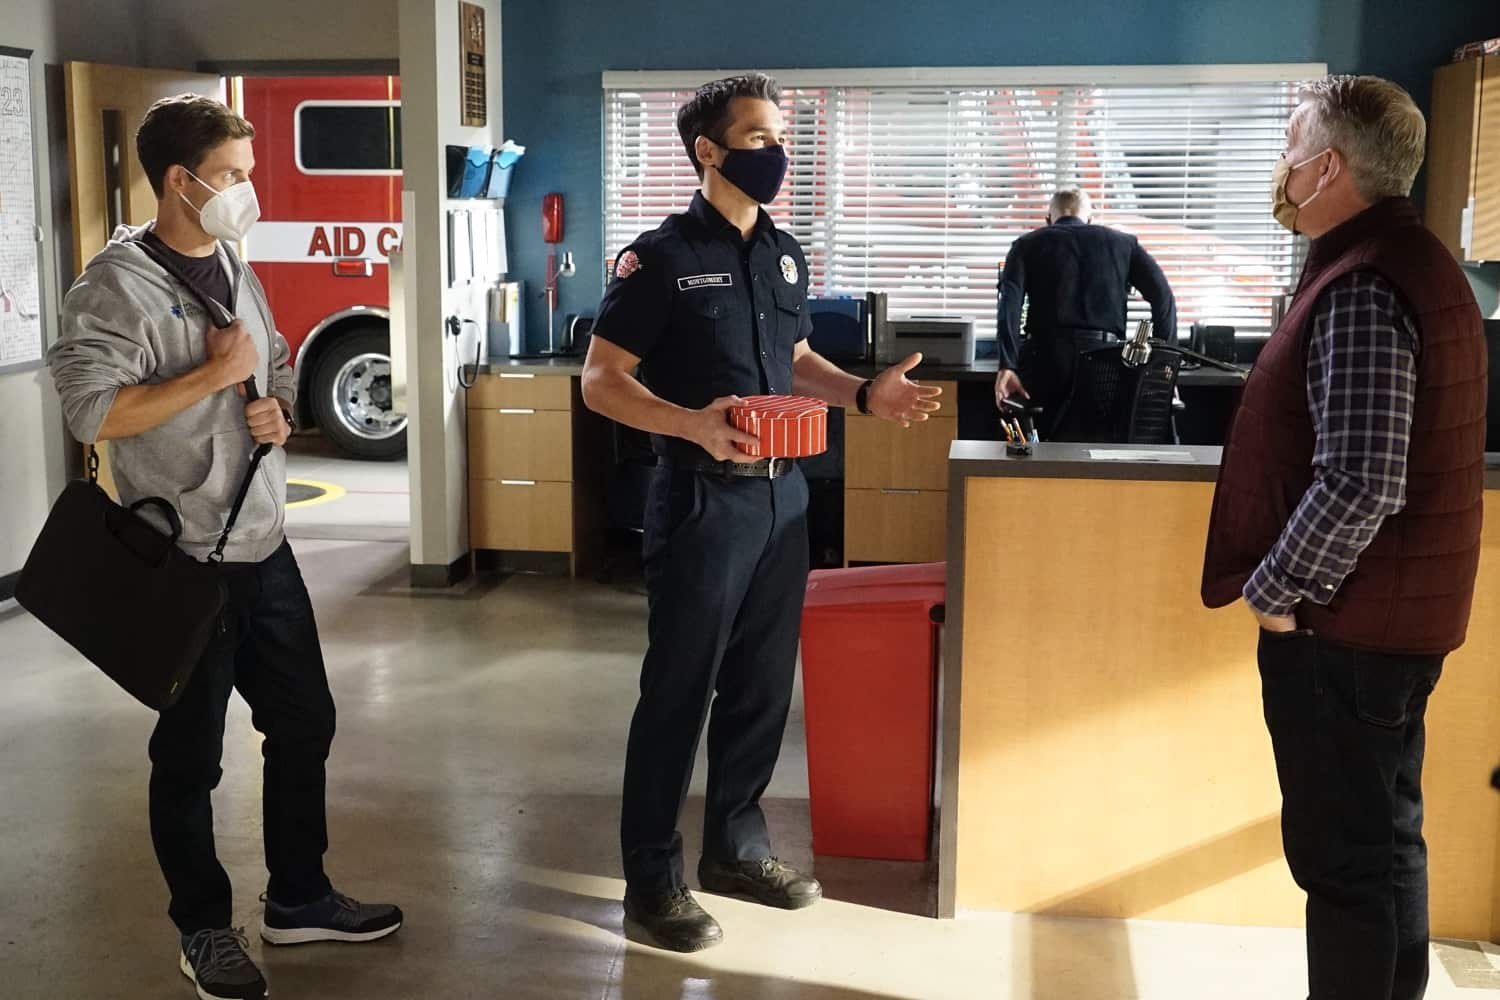 """STATION 19 - """"Learning to Fly"""" – The Station 19 crew is called to a cult gathering where they find their leader, Brother John, dancing on the roof and claiming he can fly. Meanwhile, Travis gets a surprise visit from his father, and Dean makes a difficult decision that could affect his career trajectory on an all-new episode of """"Station 19,"""" THURSDAY, MARCH 18 (8:00-9:00 p.m. EST), on ABC. (ABC/Kelsey McNeal) LACHLAN BUCHANAN, JAY HAYDEN"""